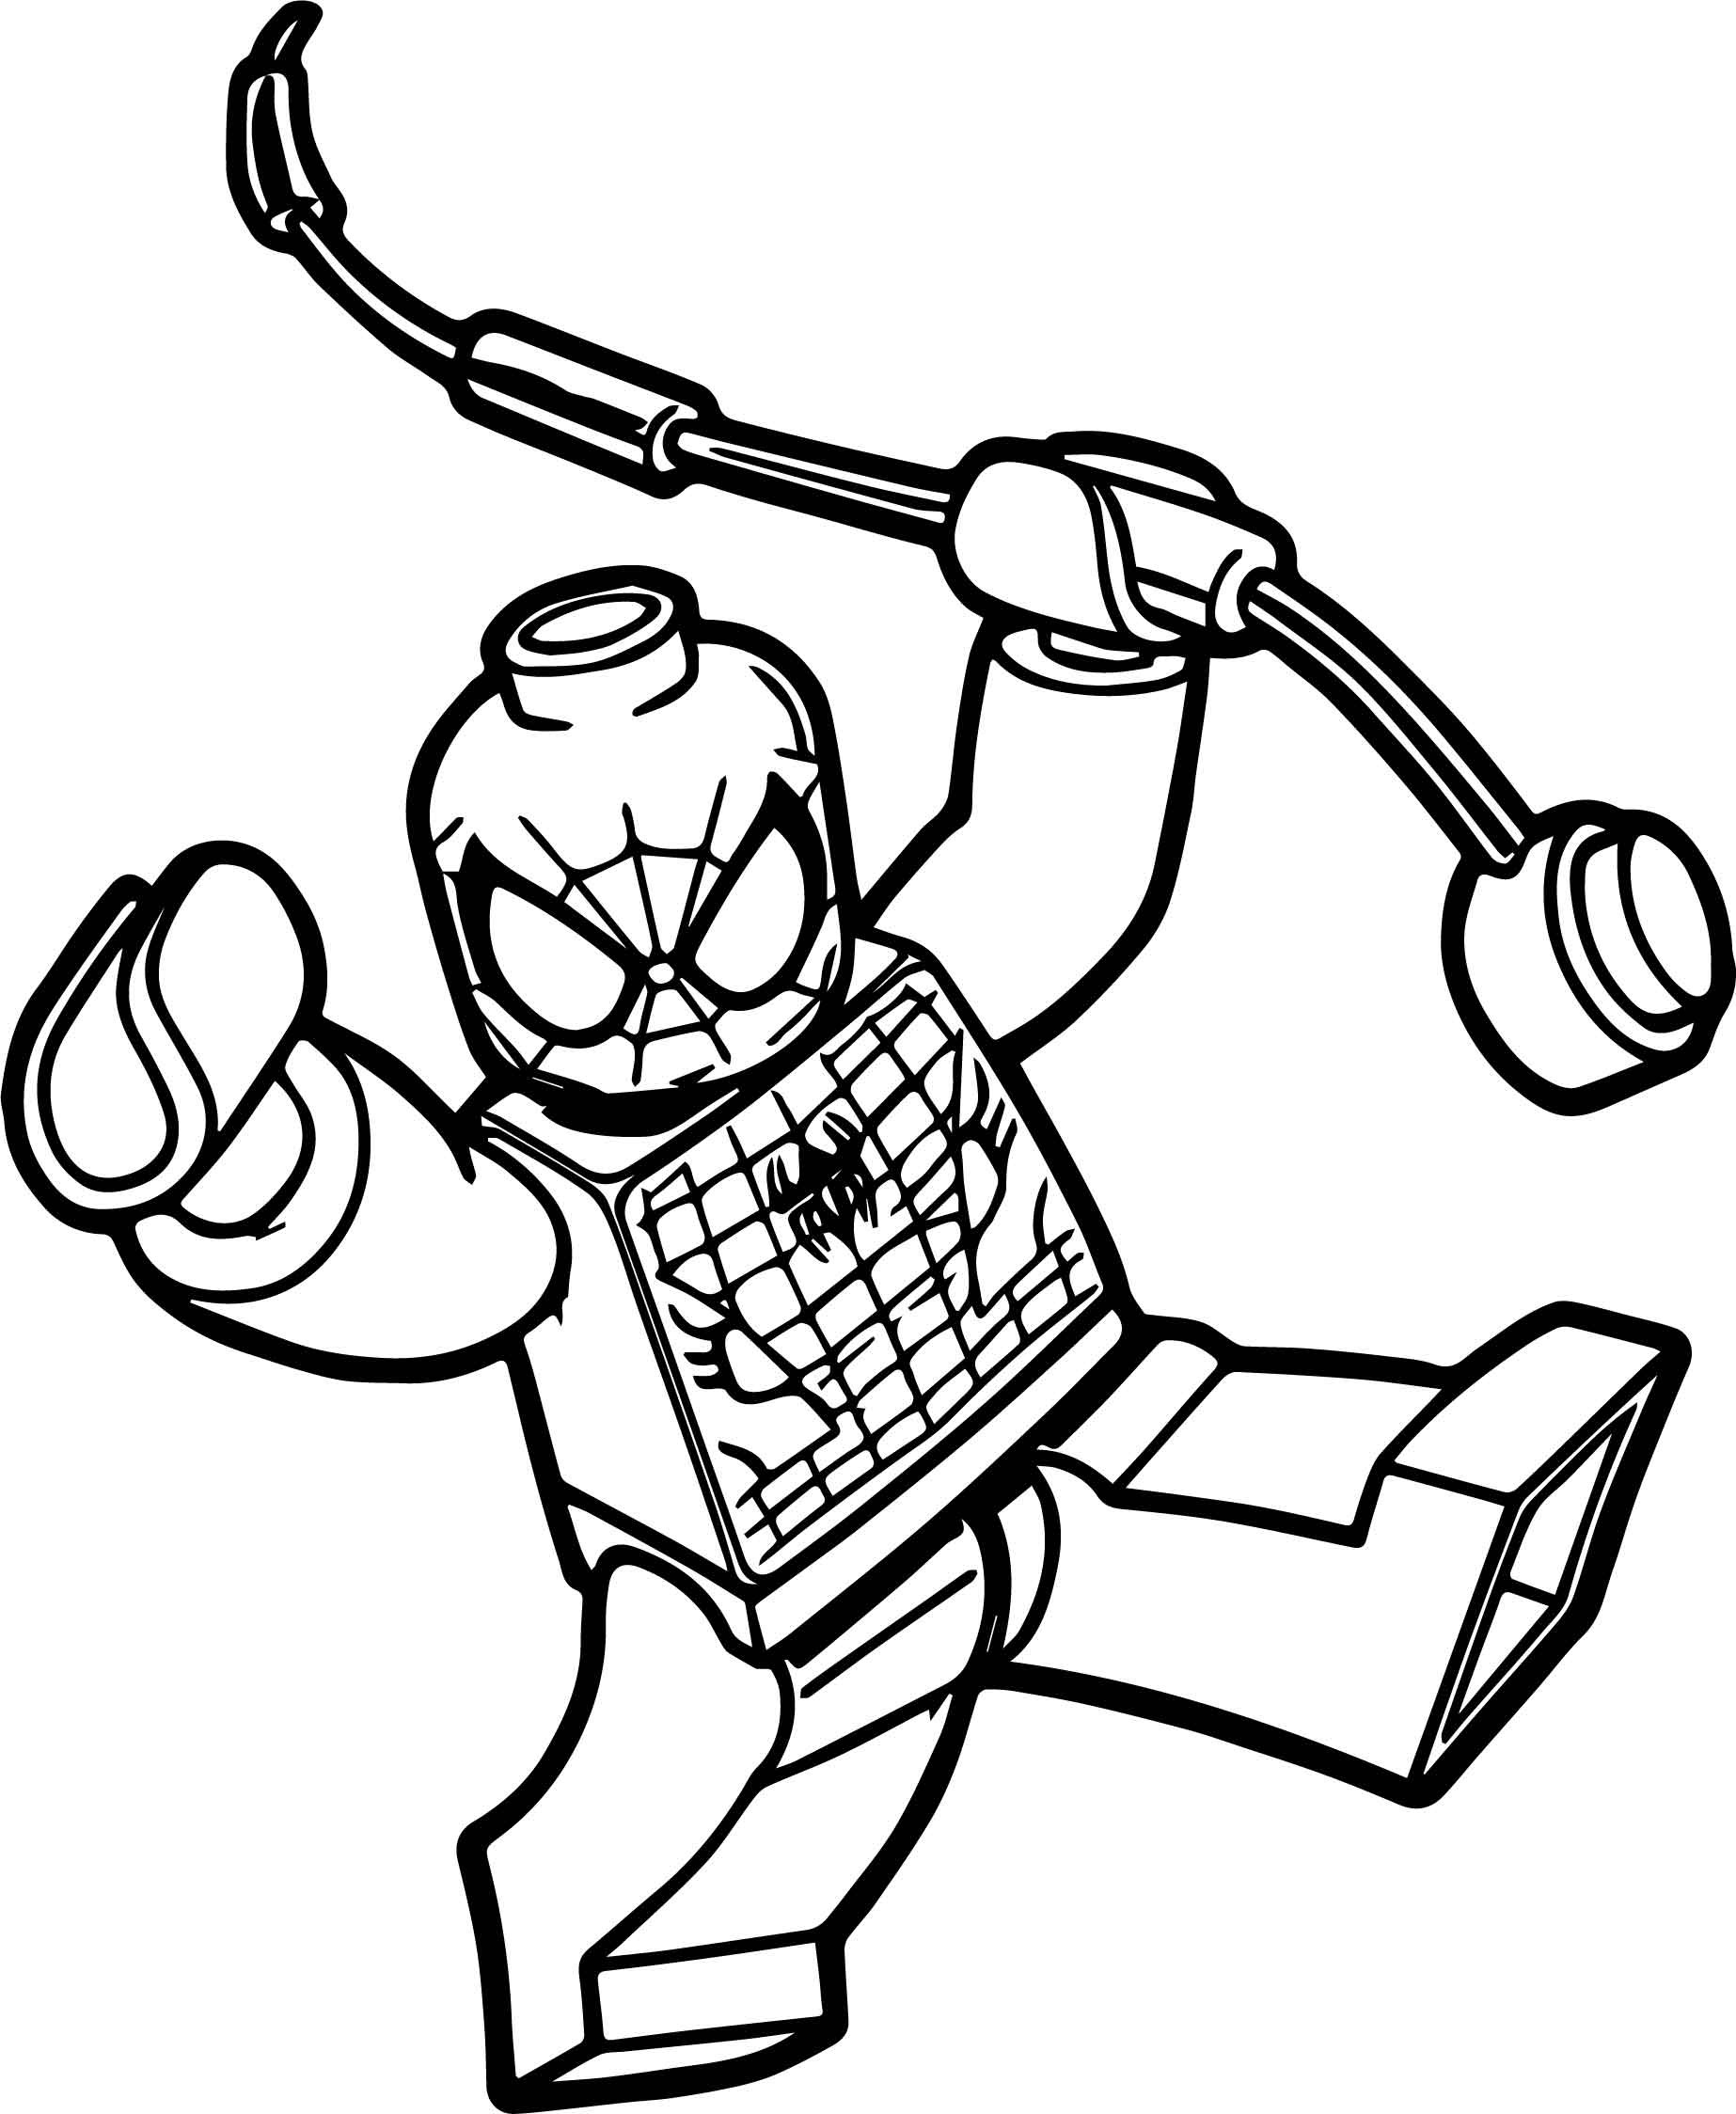 lego drawings to colour create your own lego coloring pages for kids drawings to lego colour